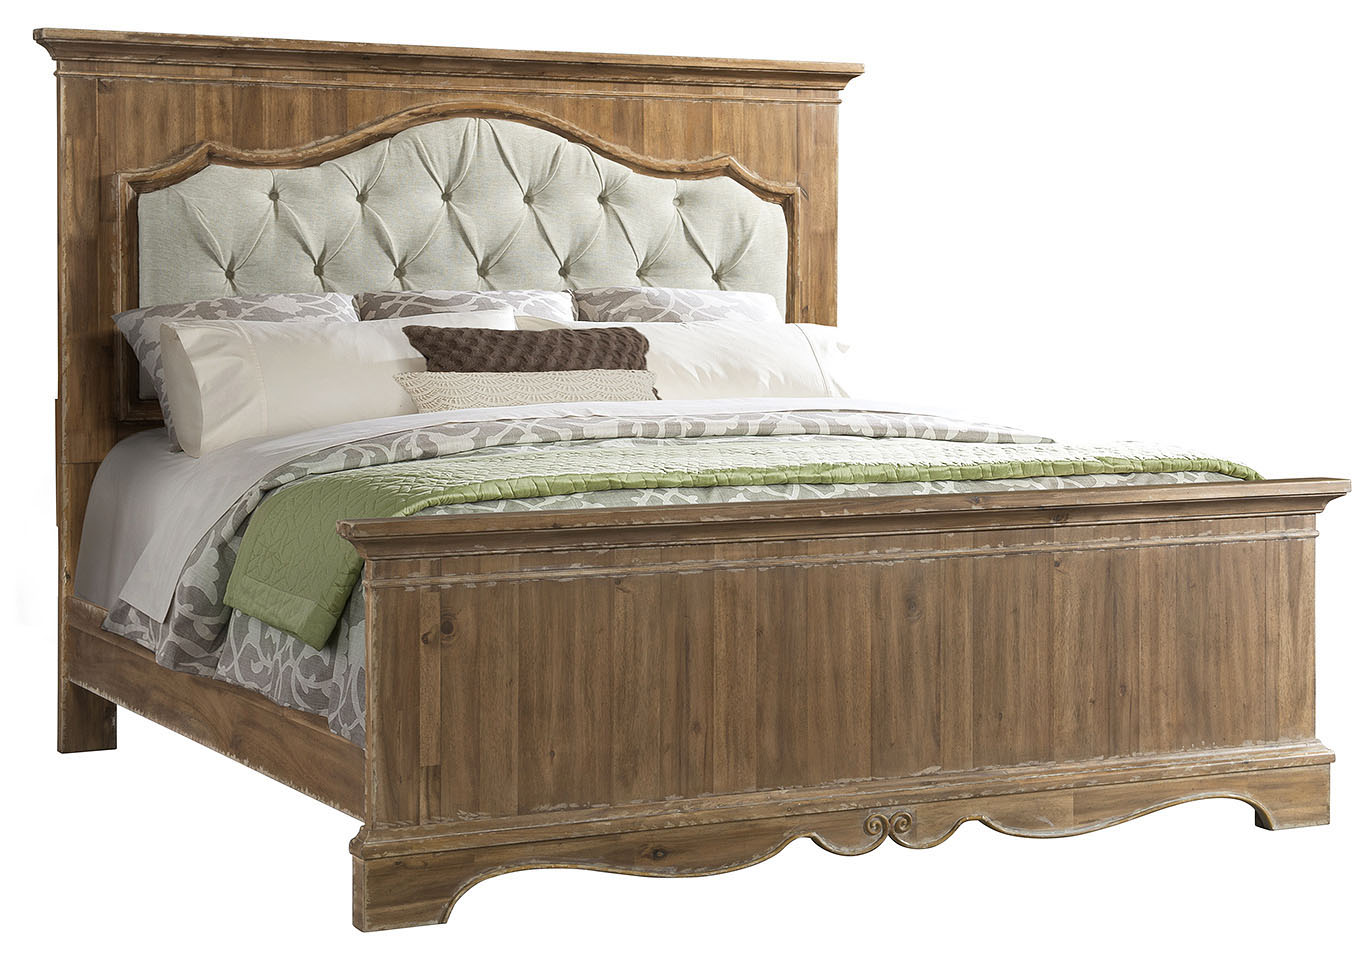 1048 Cottage Charm King Bed,Lane Furniture